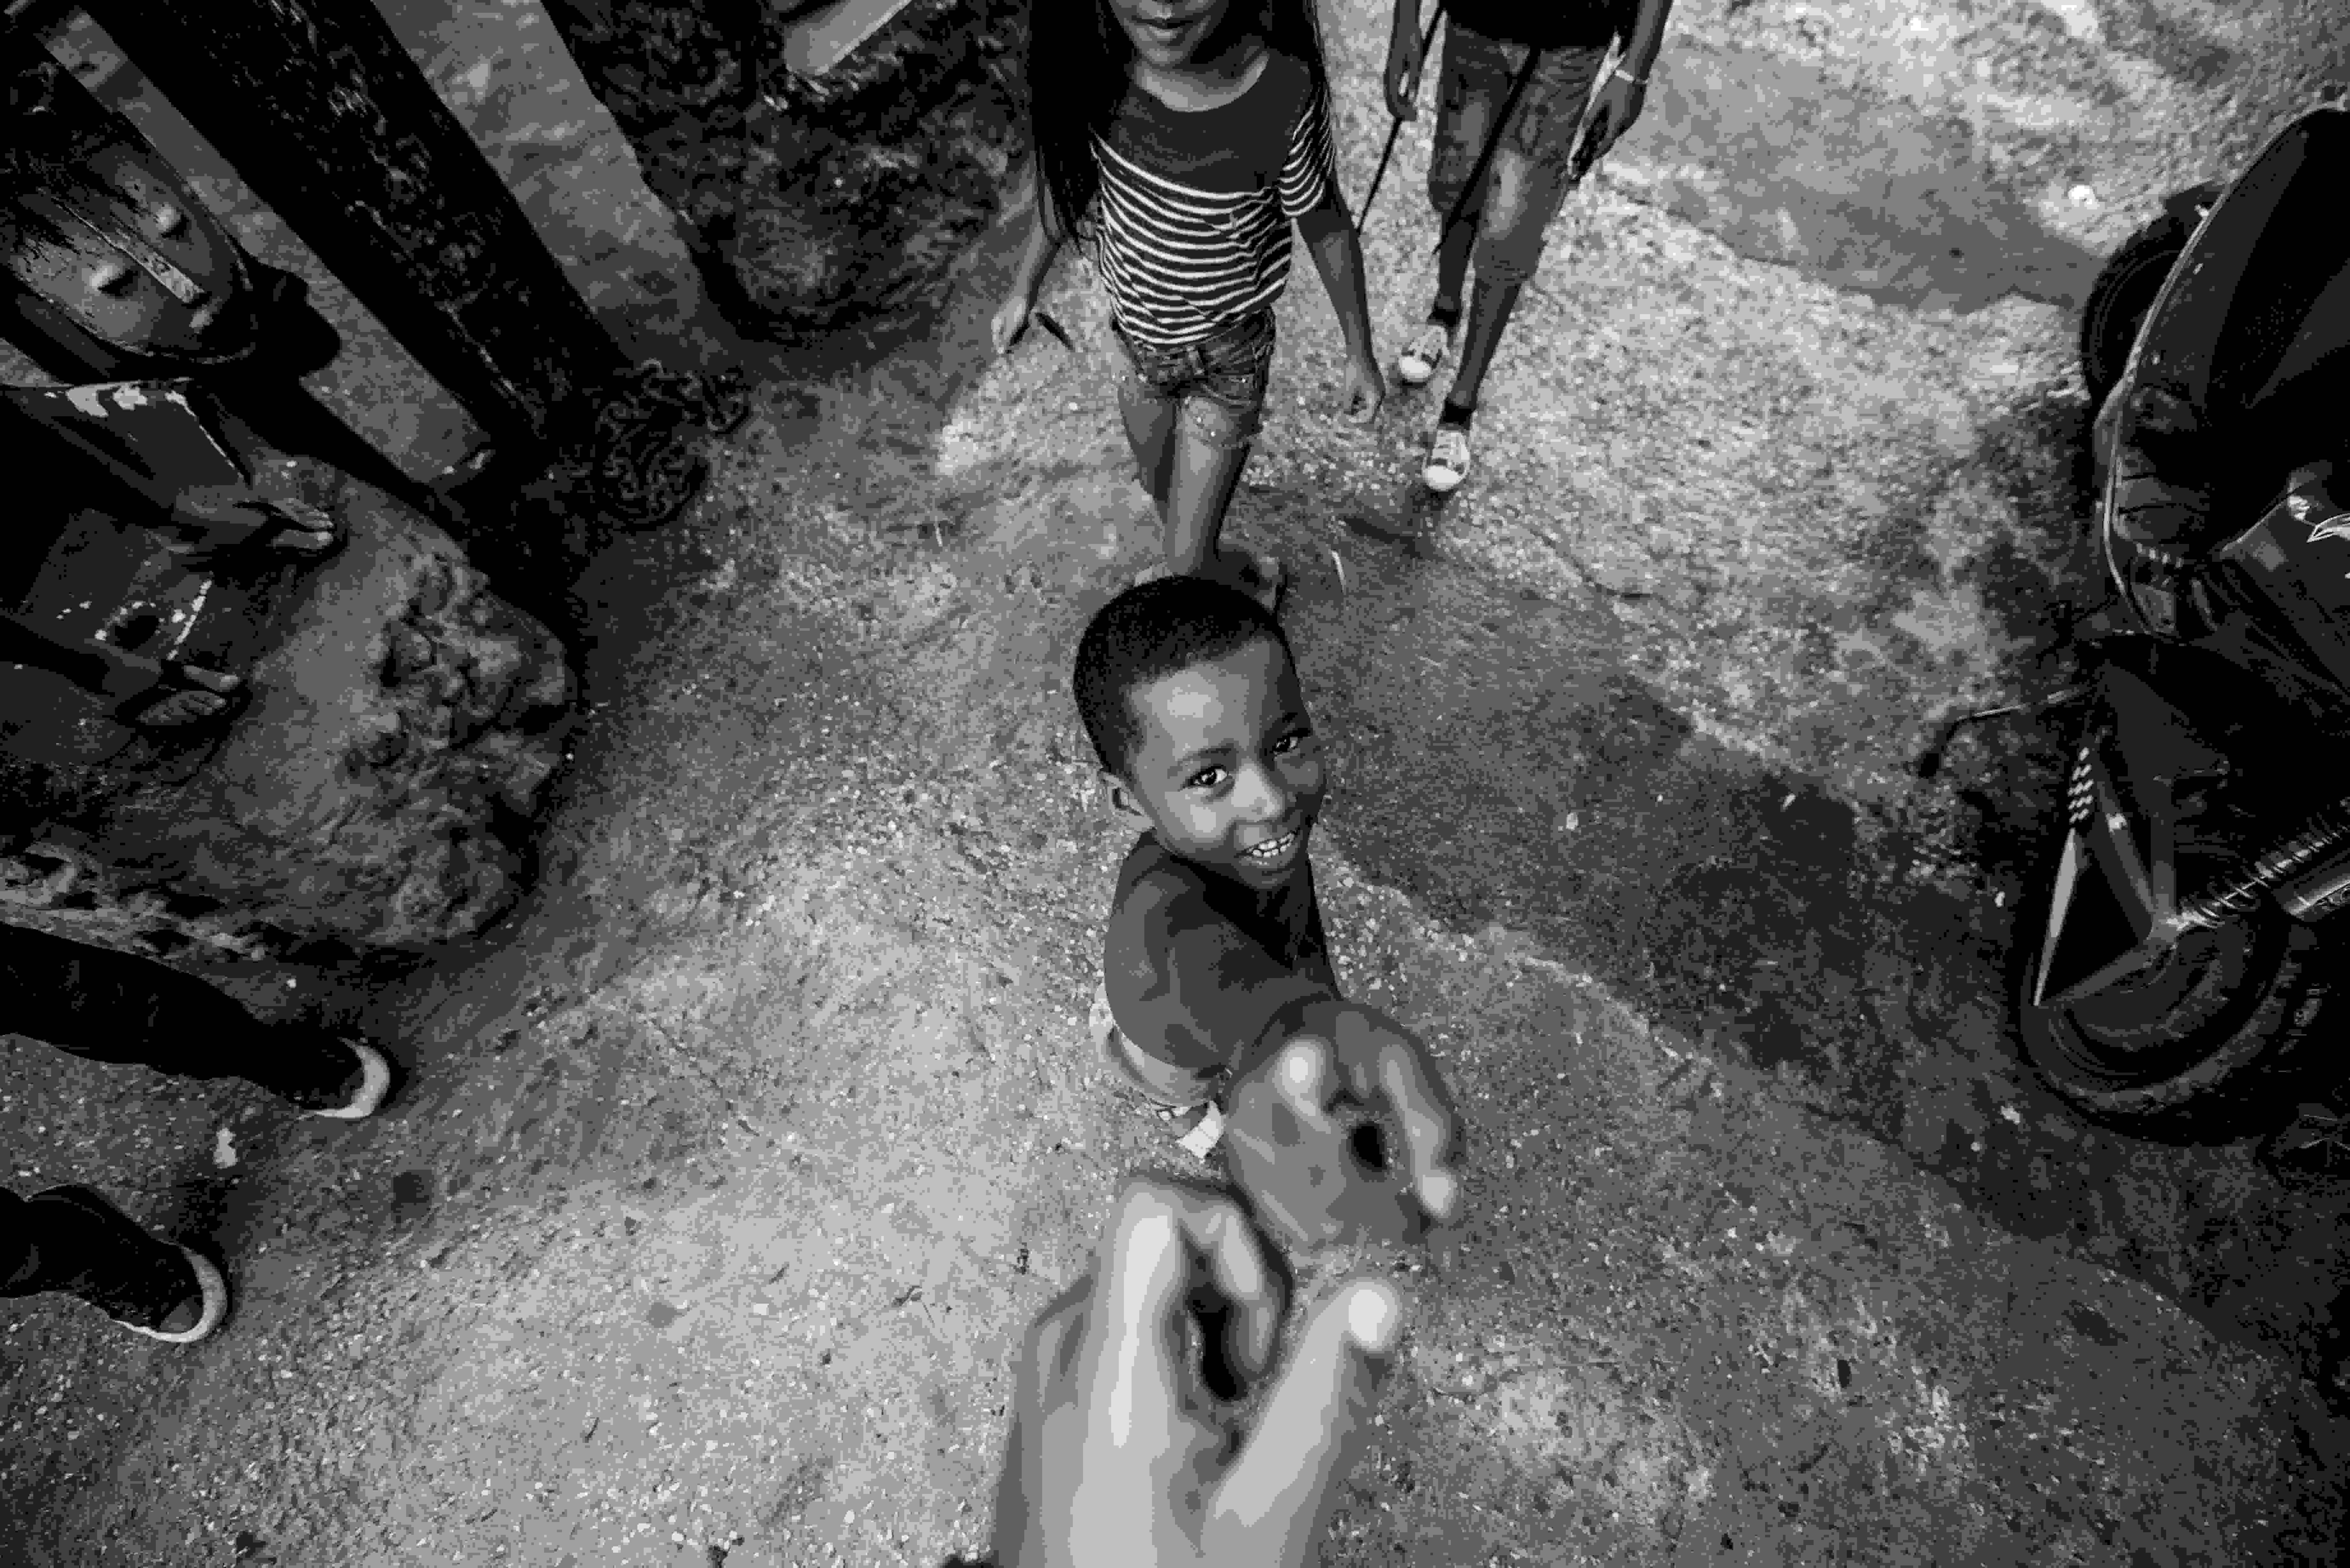 A picture of a young boy reaching up to hold someone's hand as an indication of impact created in someone's life